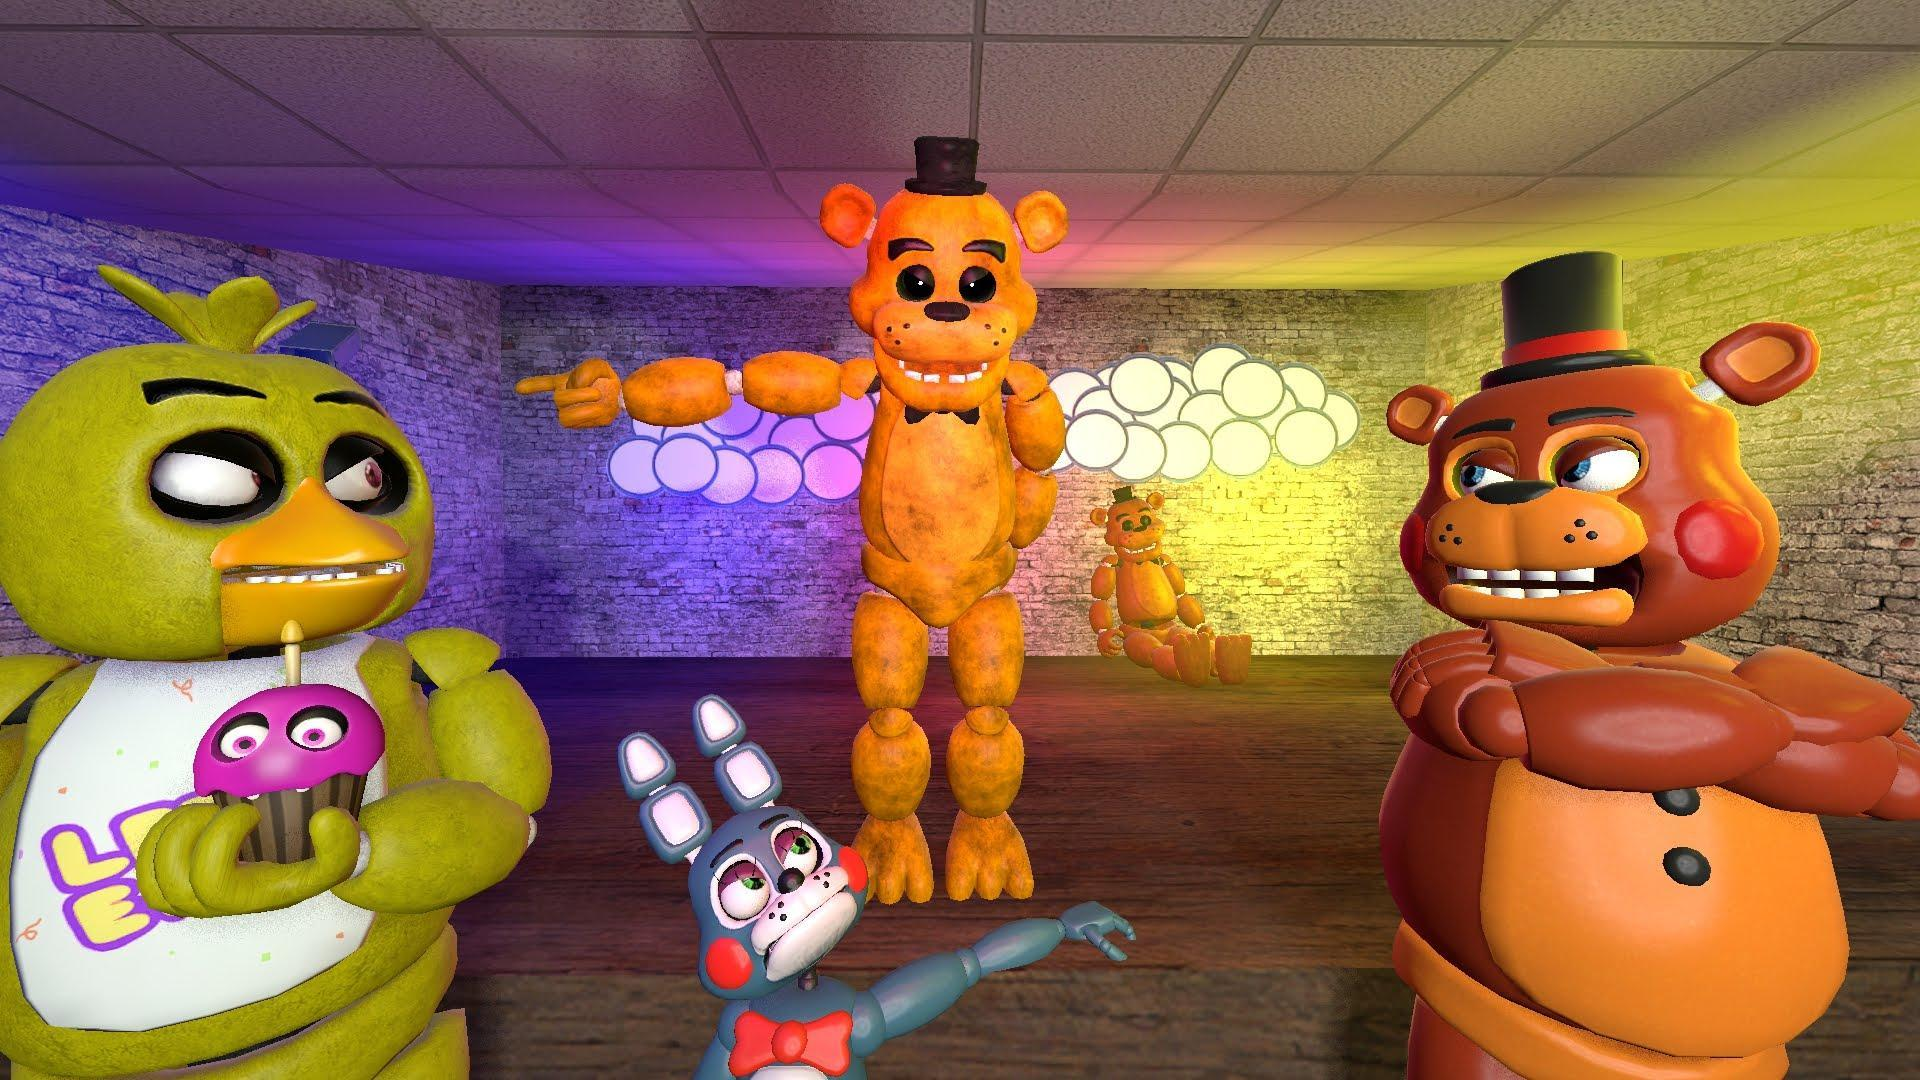 In the sfm Assistant. Who is the last animatronic talking with Freddy for help?